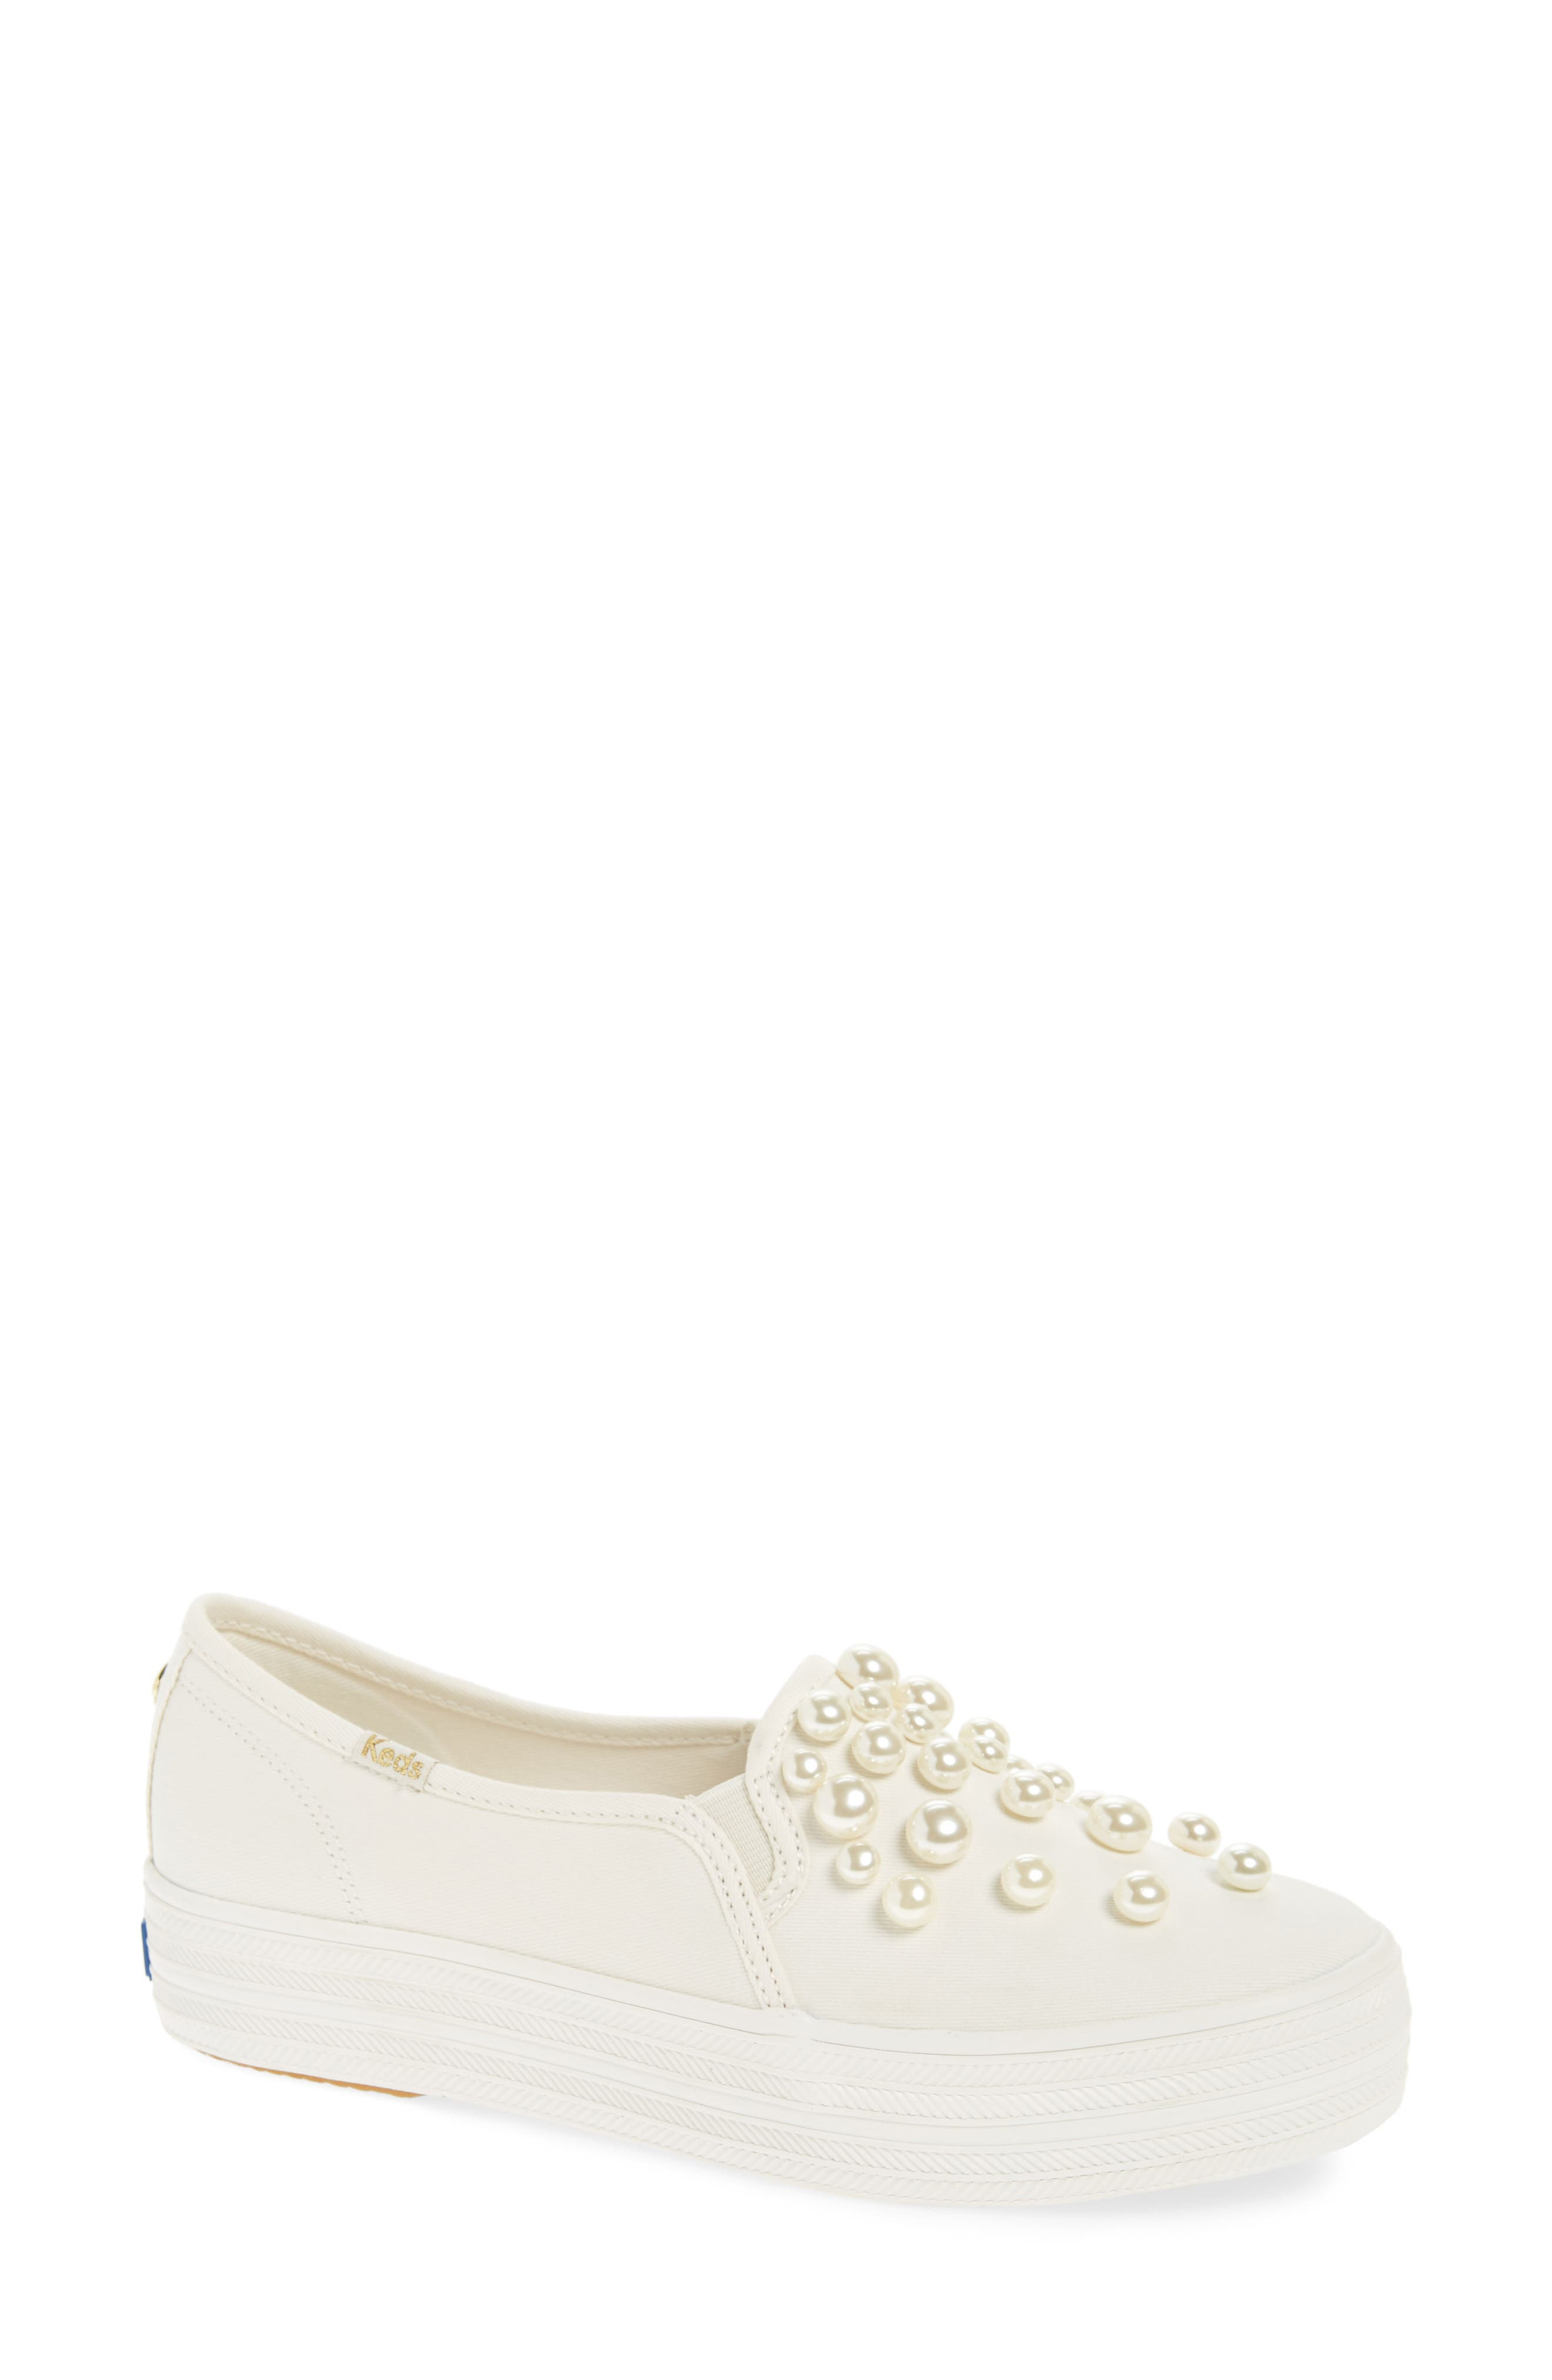 triple decker embellished slip-on sneaker,                             Main thumbnail 1, color,                             Cream